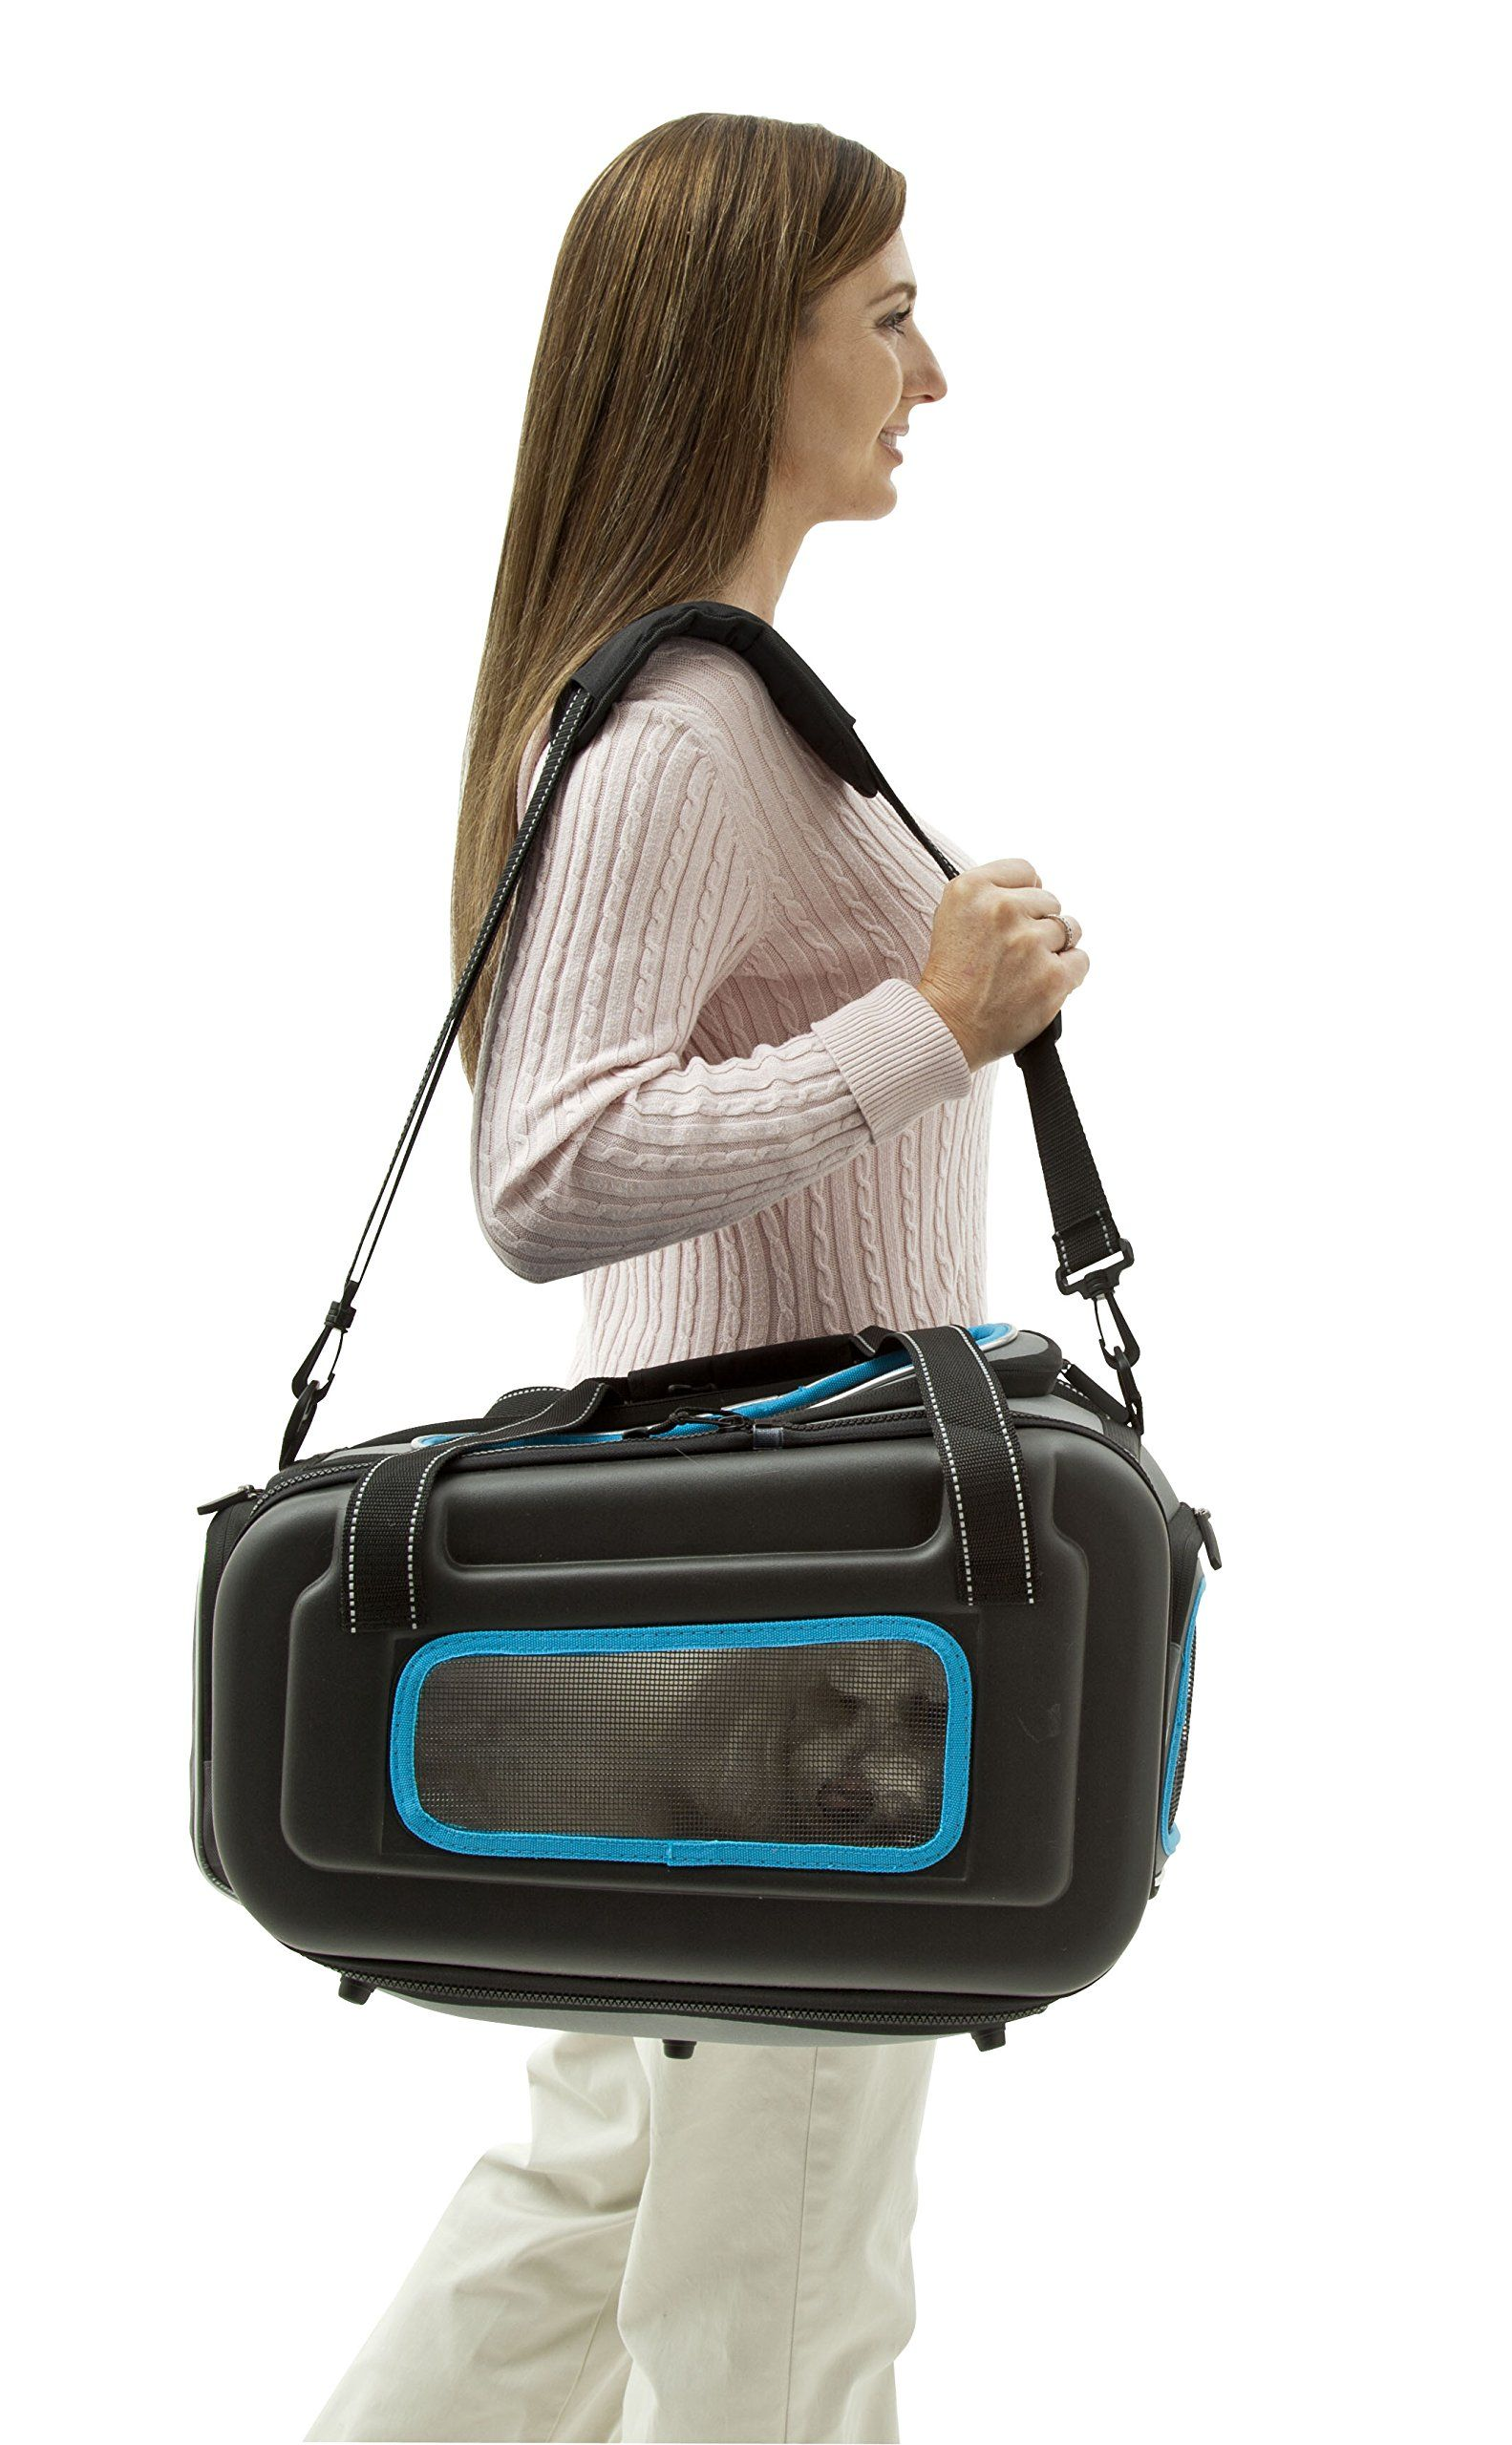 PET LIFE StowAway Airline Approved Ergonomically designed